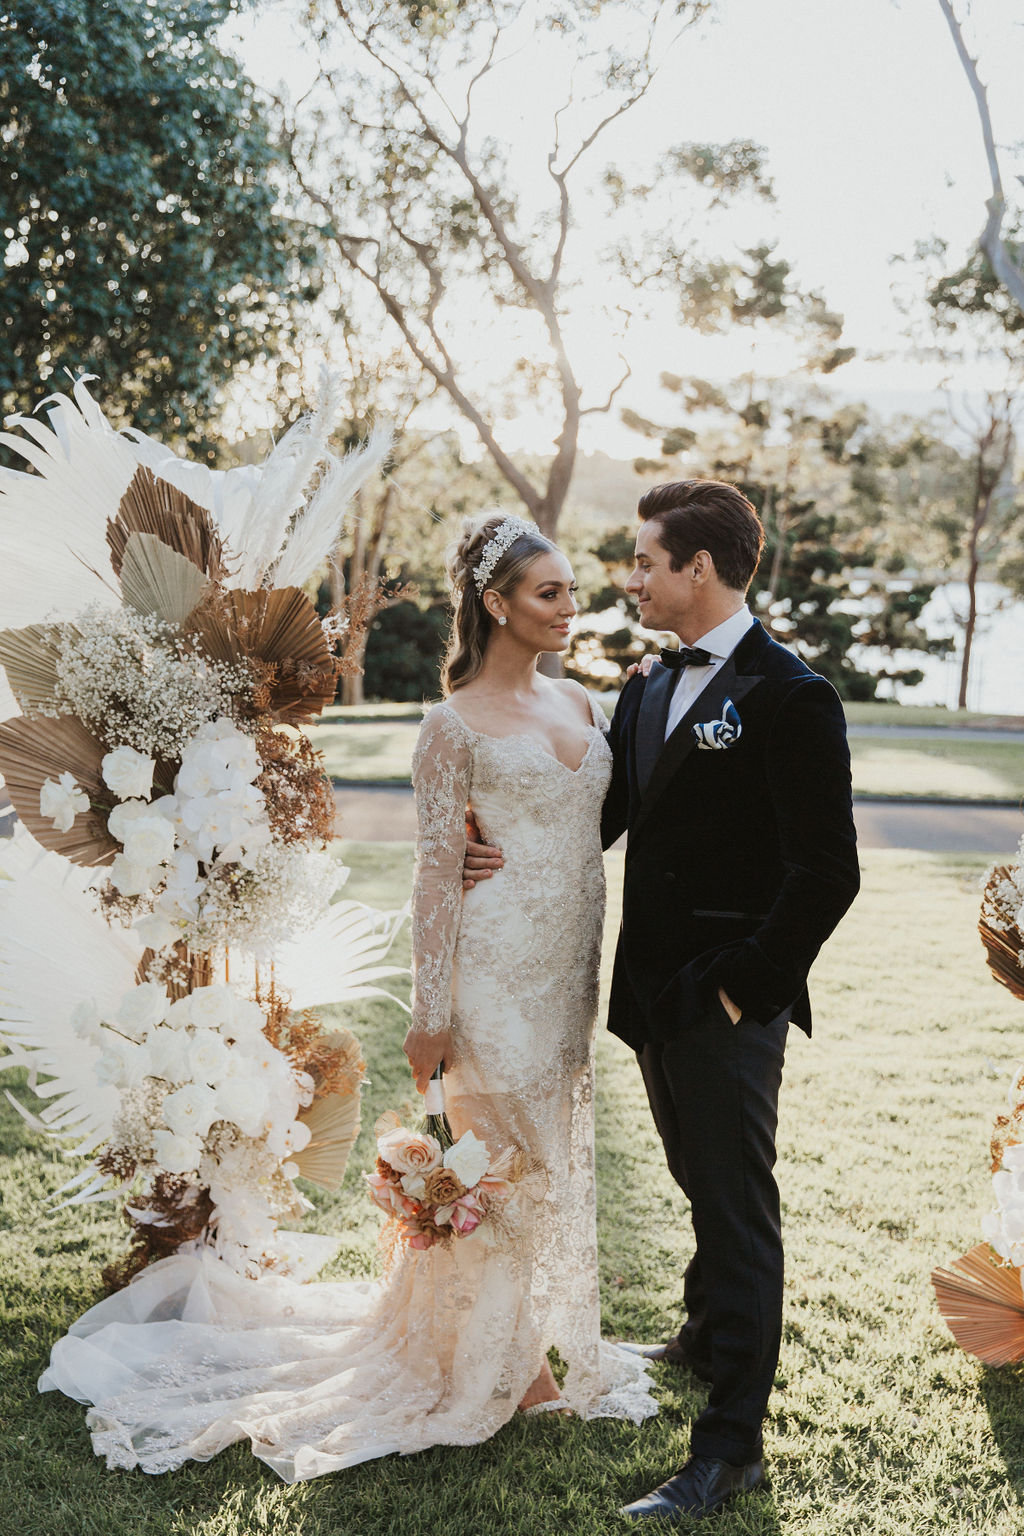 kiri shay photography palm house sydney bridal gowns floral design weddings styling